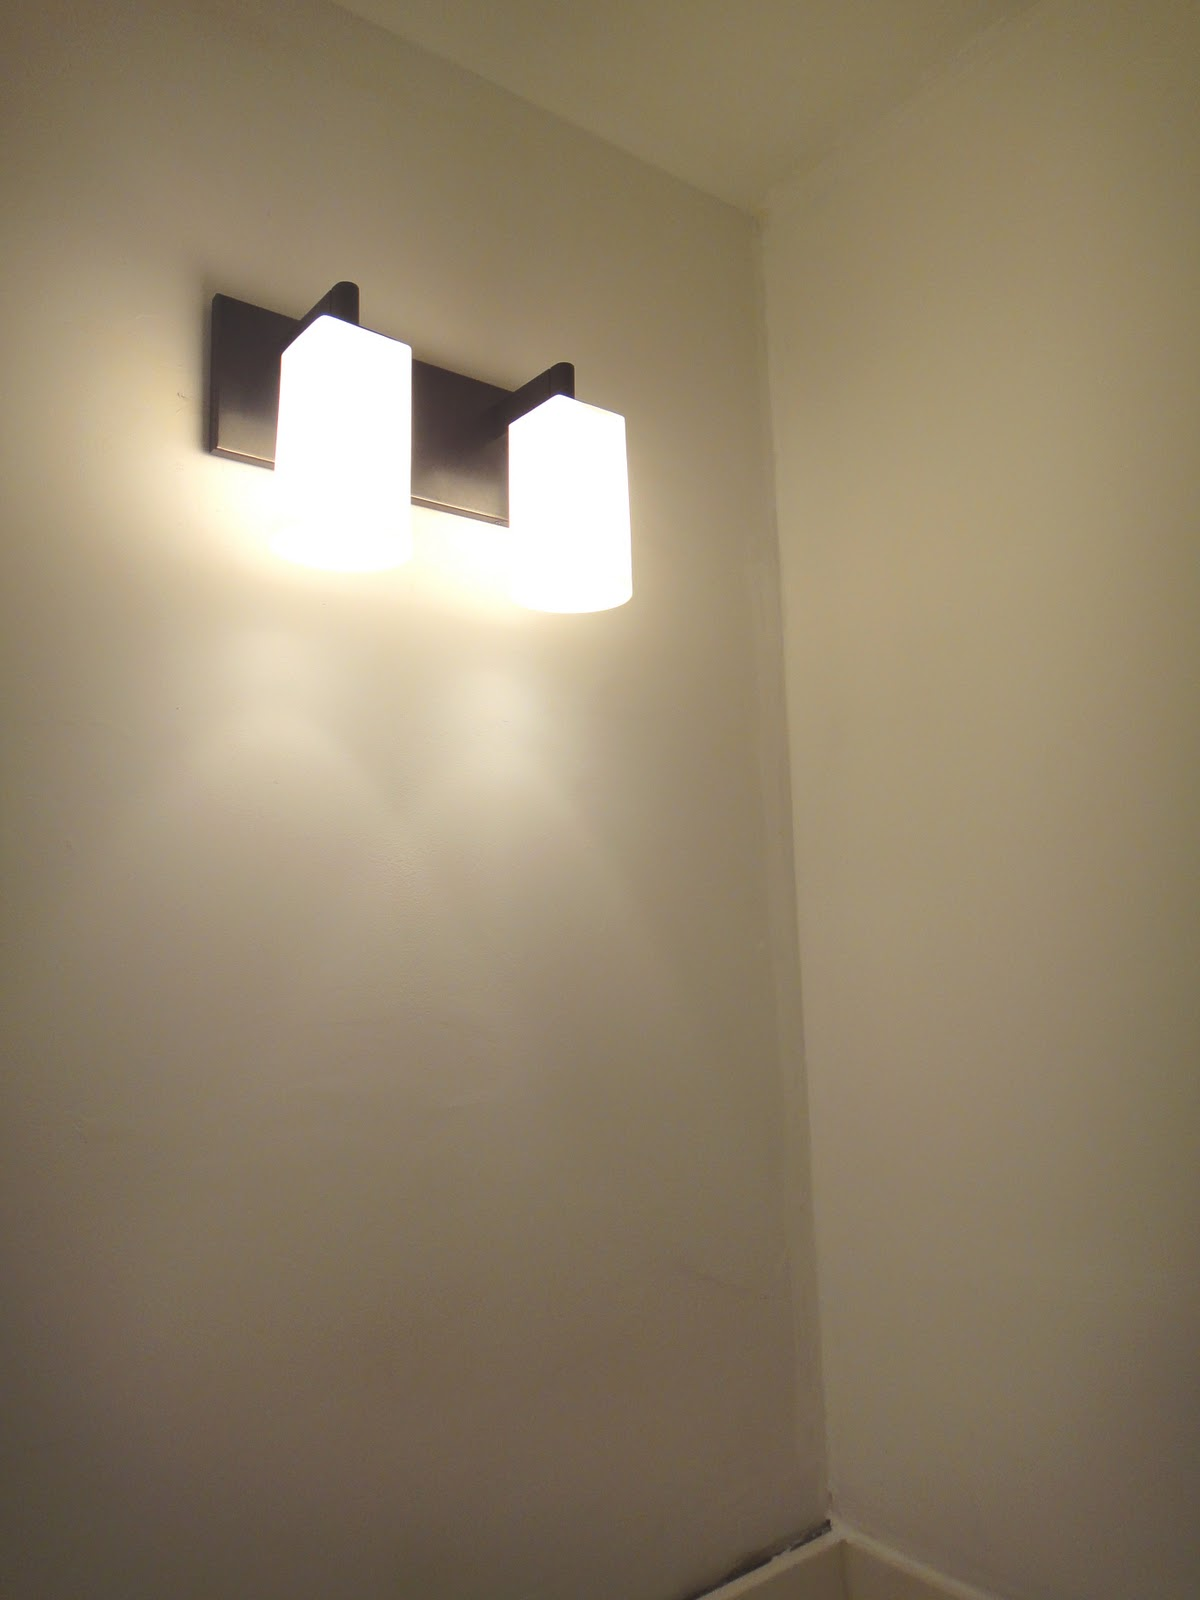 Vanity Light With Electrical Socket : Bathroom Lighting With Electrical Outlet Simple Home Decoration